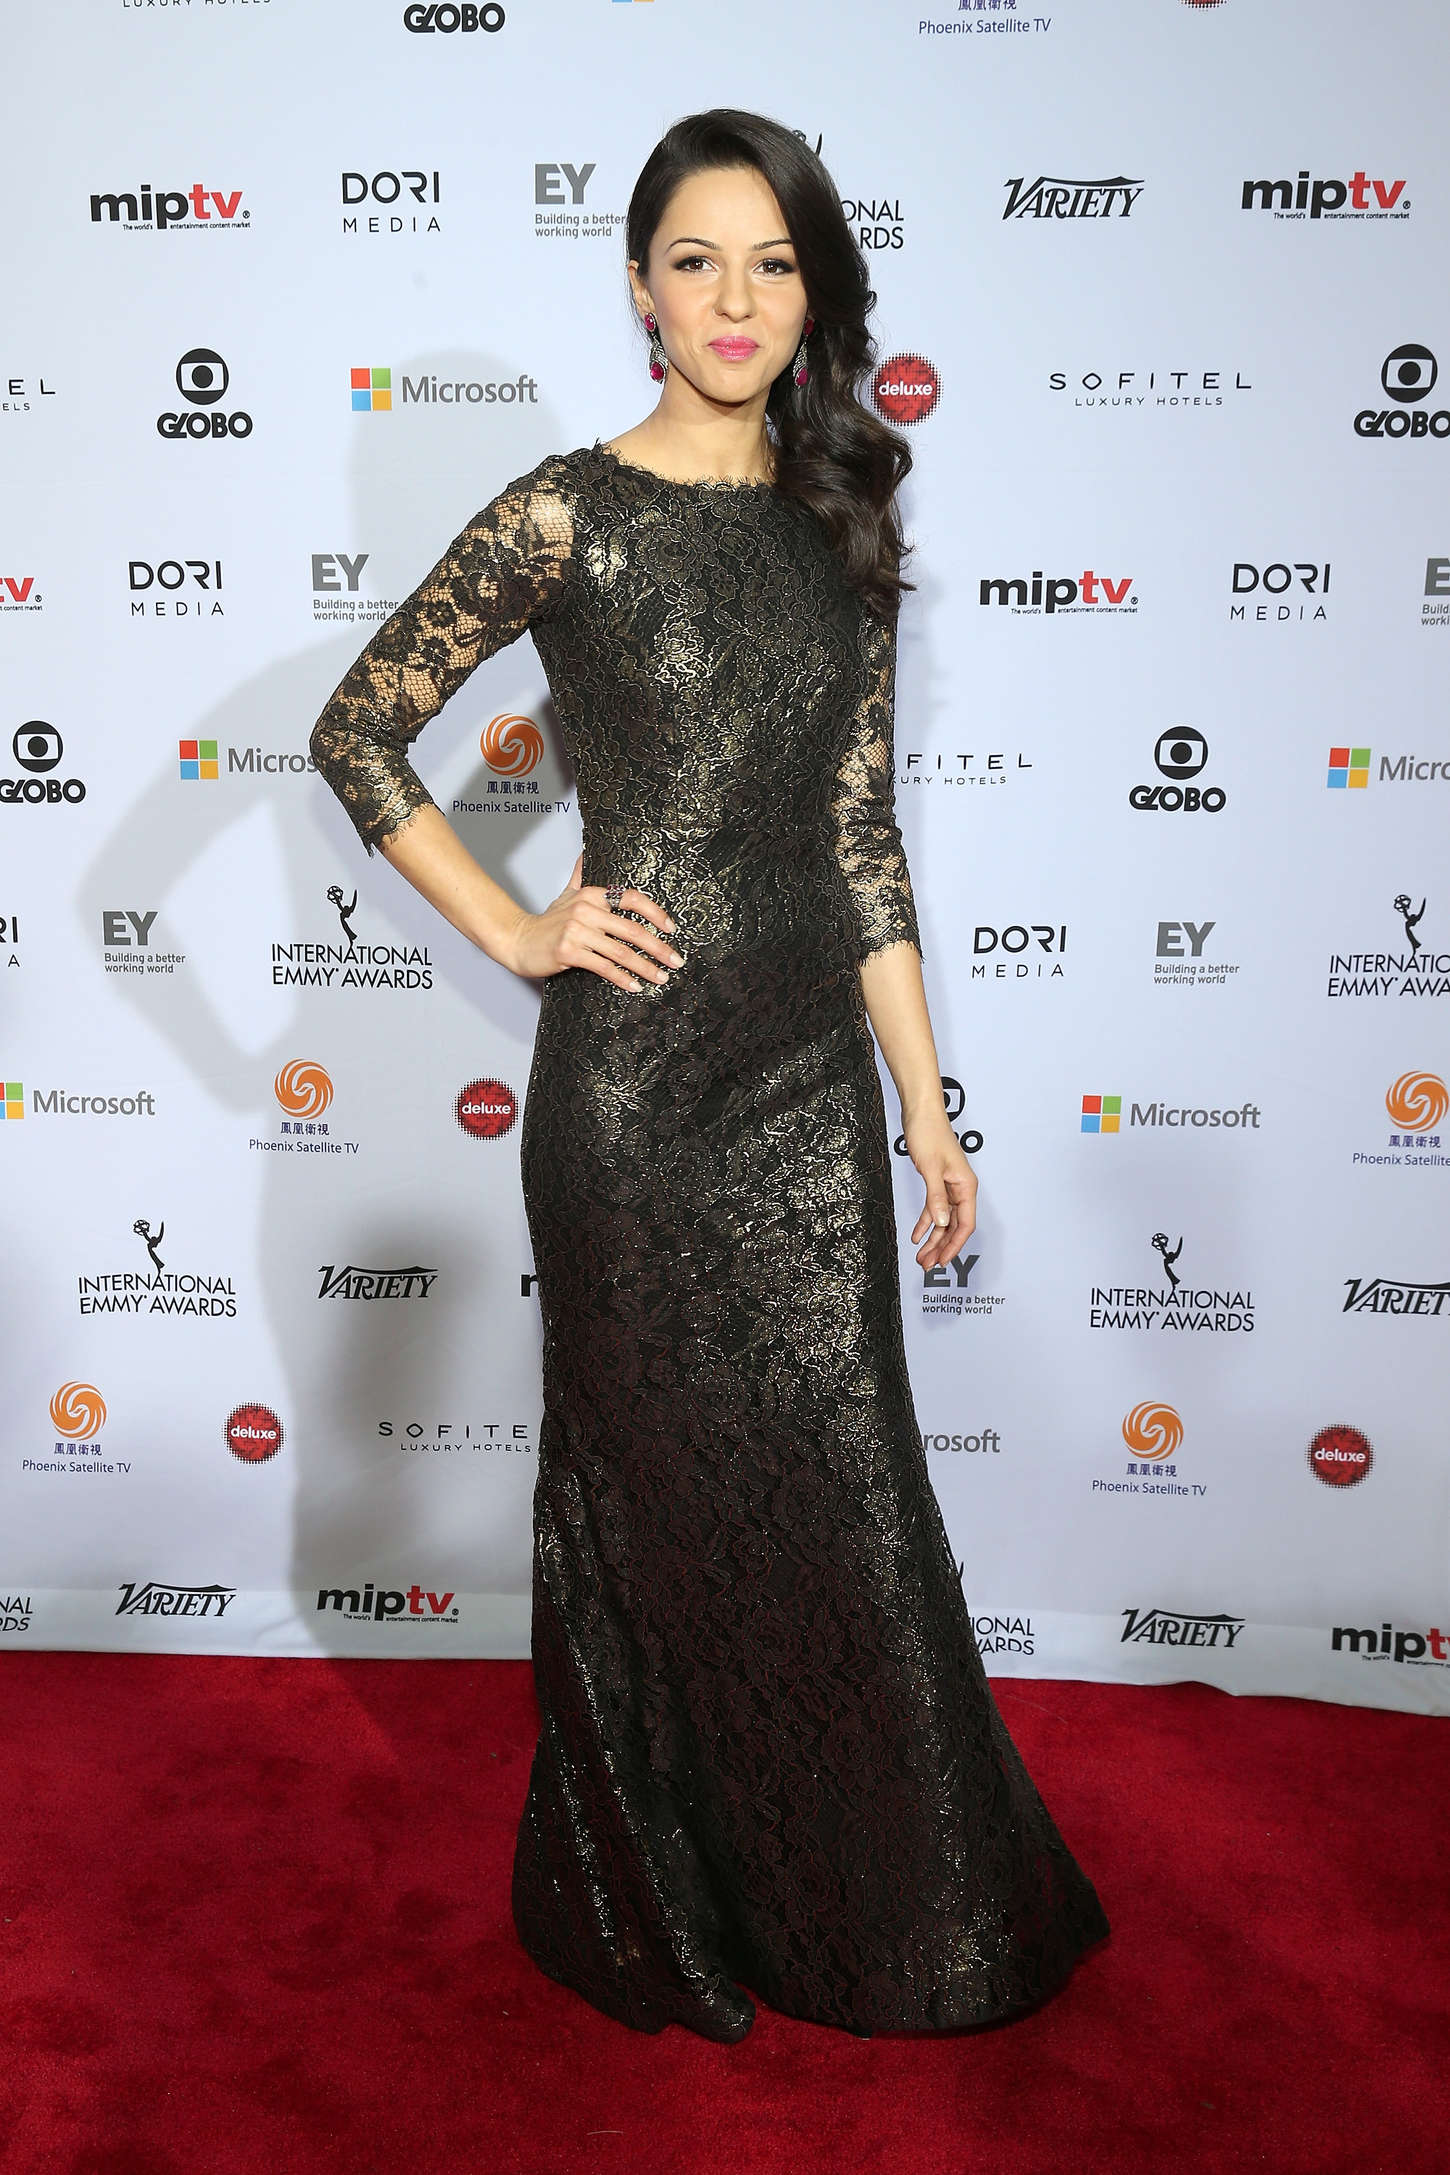 Annet Mahendru International Academy Of Television Arts Sciences Emmy Awards in New York